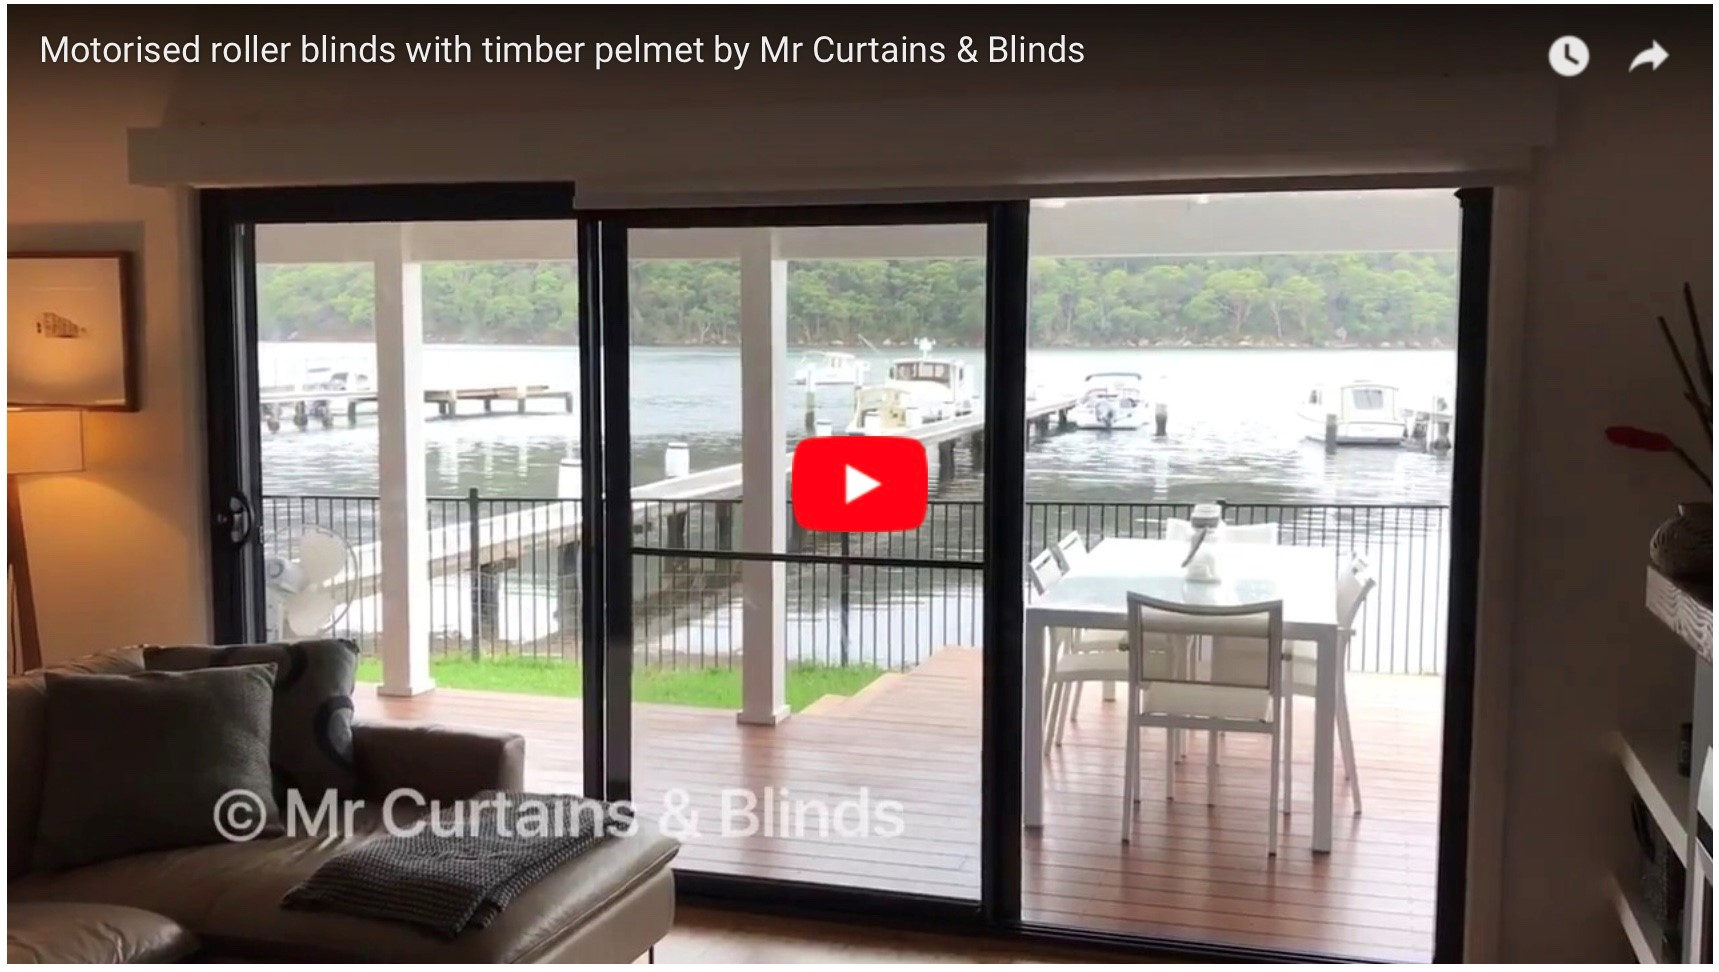 Motorised roller blinds Woy Woy Bay Mr Curtains and Blinds